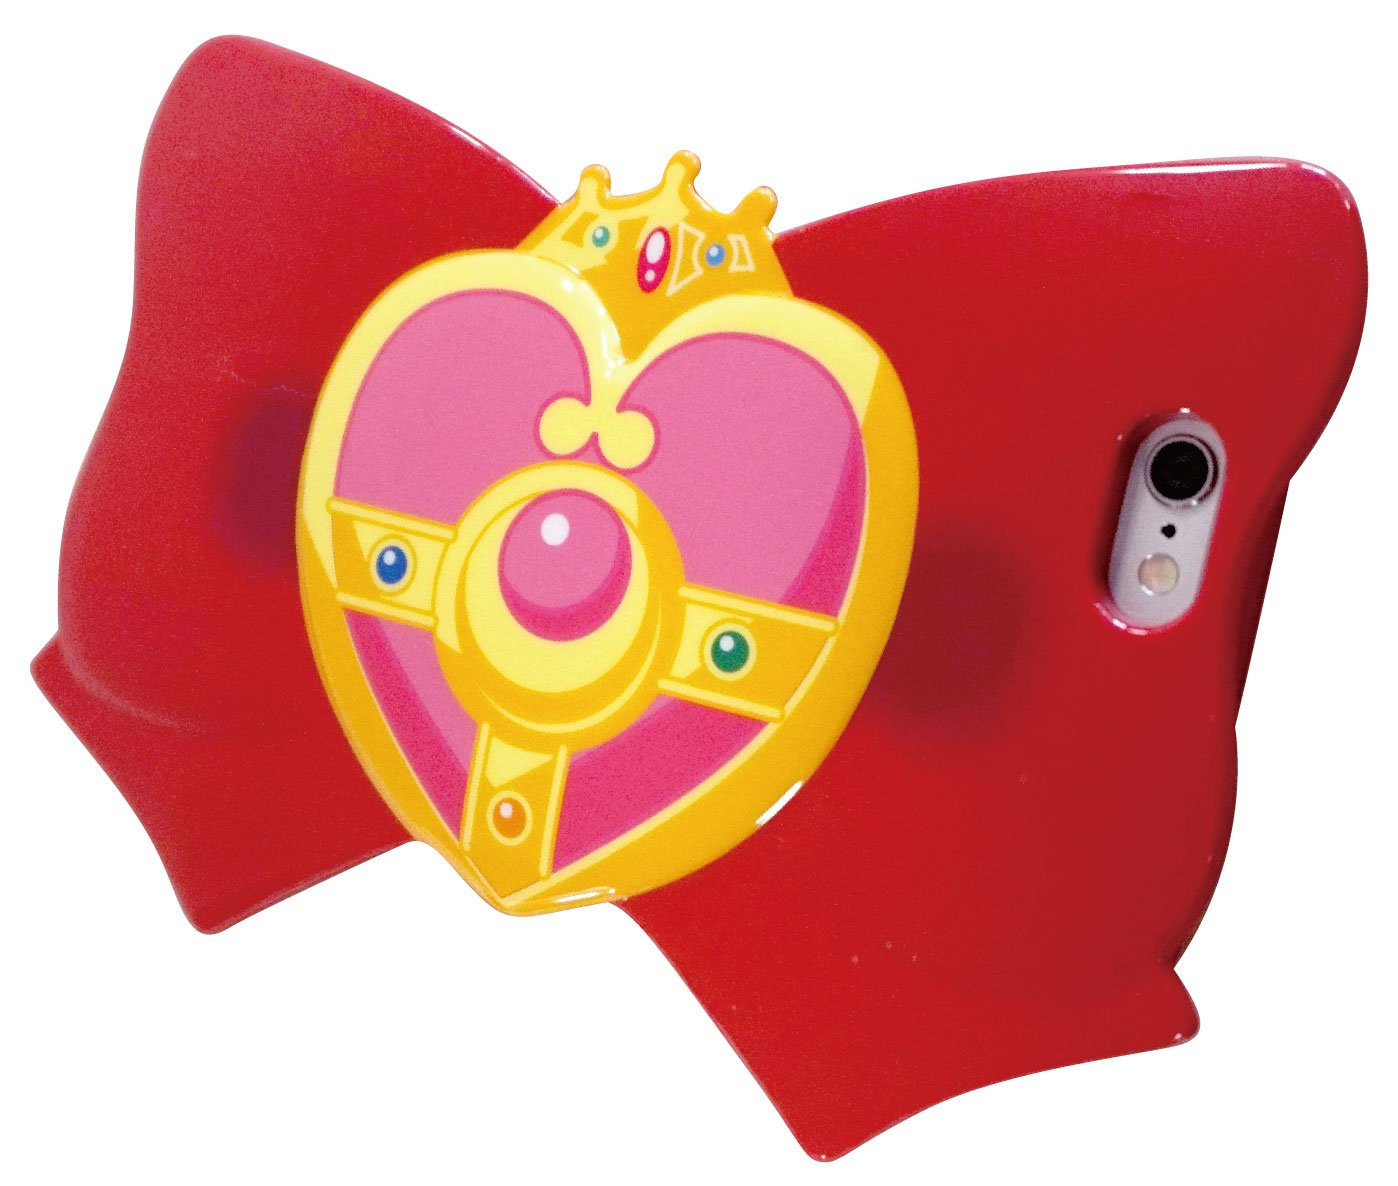 Sailor Moon iPhone6 Case Soft TPU (Thermoplastic Polyurethane) Cover Ribbon Jacket Cosmic heart compact Kozu Mick heart compact Bandai SLM-32A